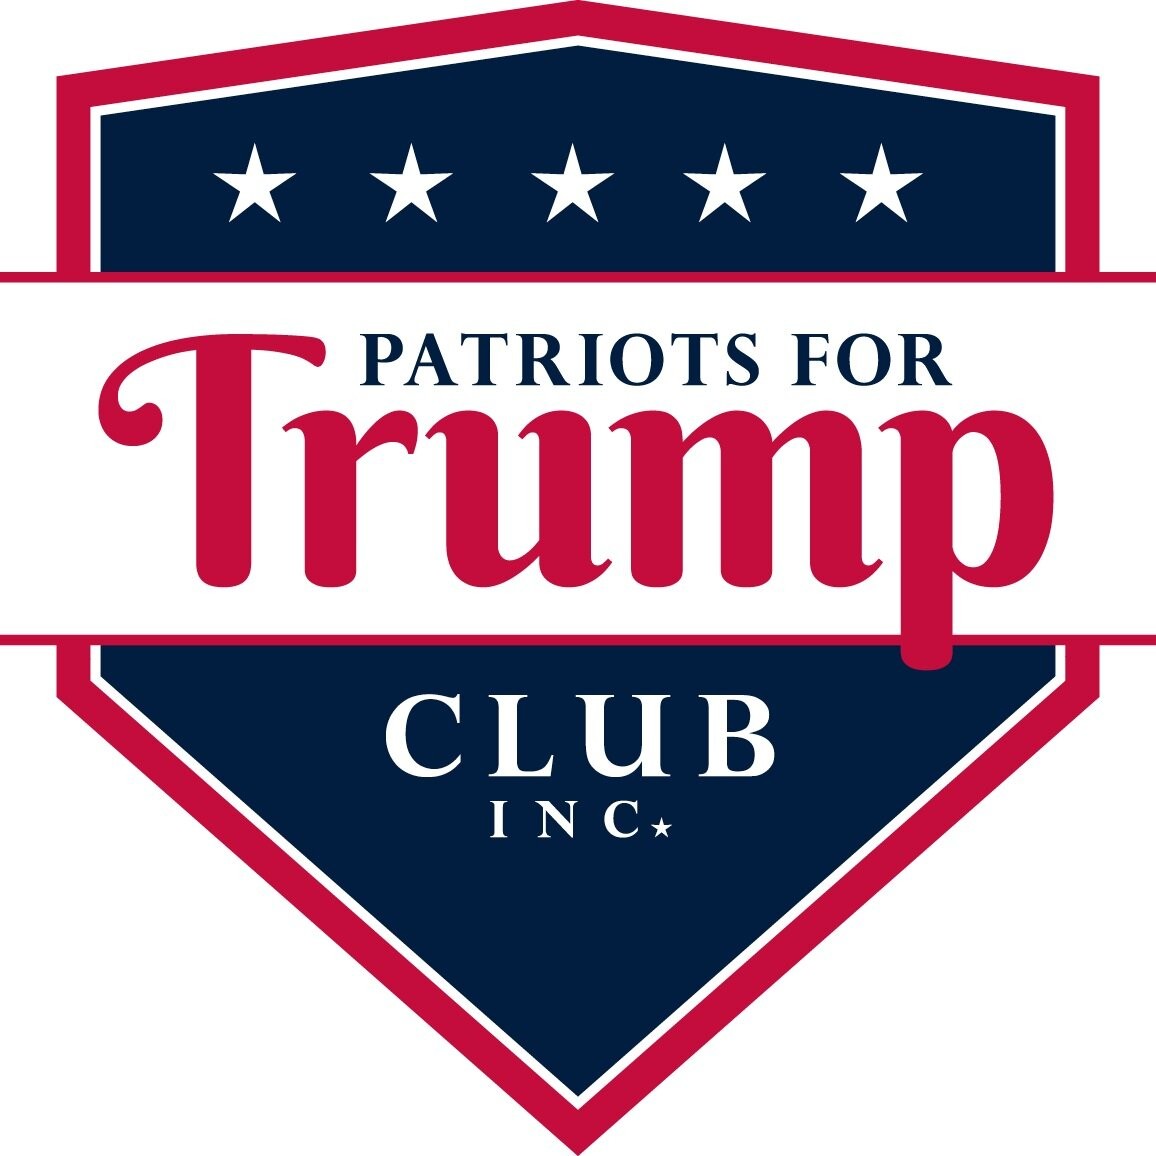 Patriots for Trump Club, Inc.